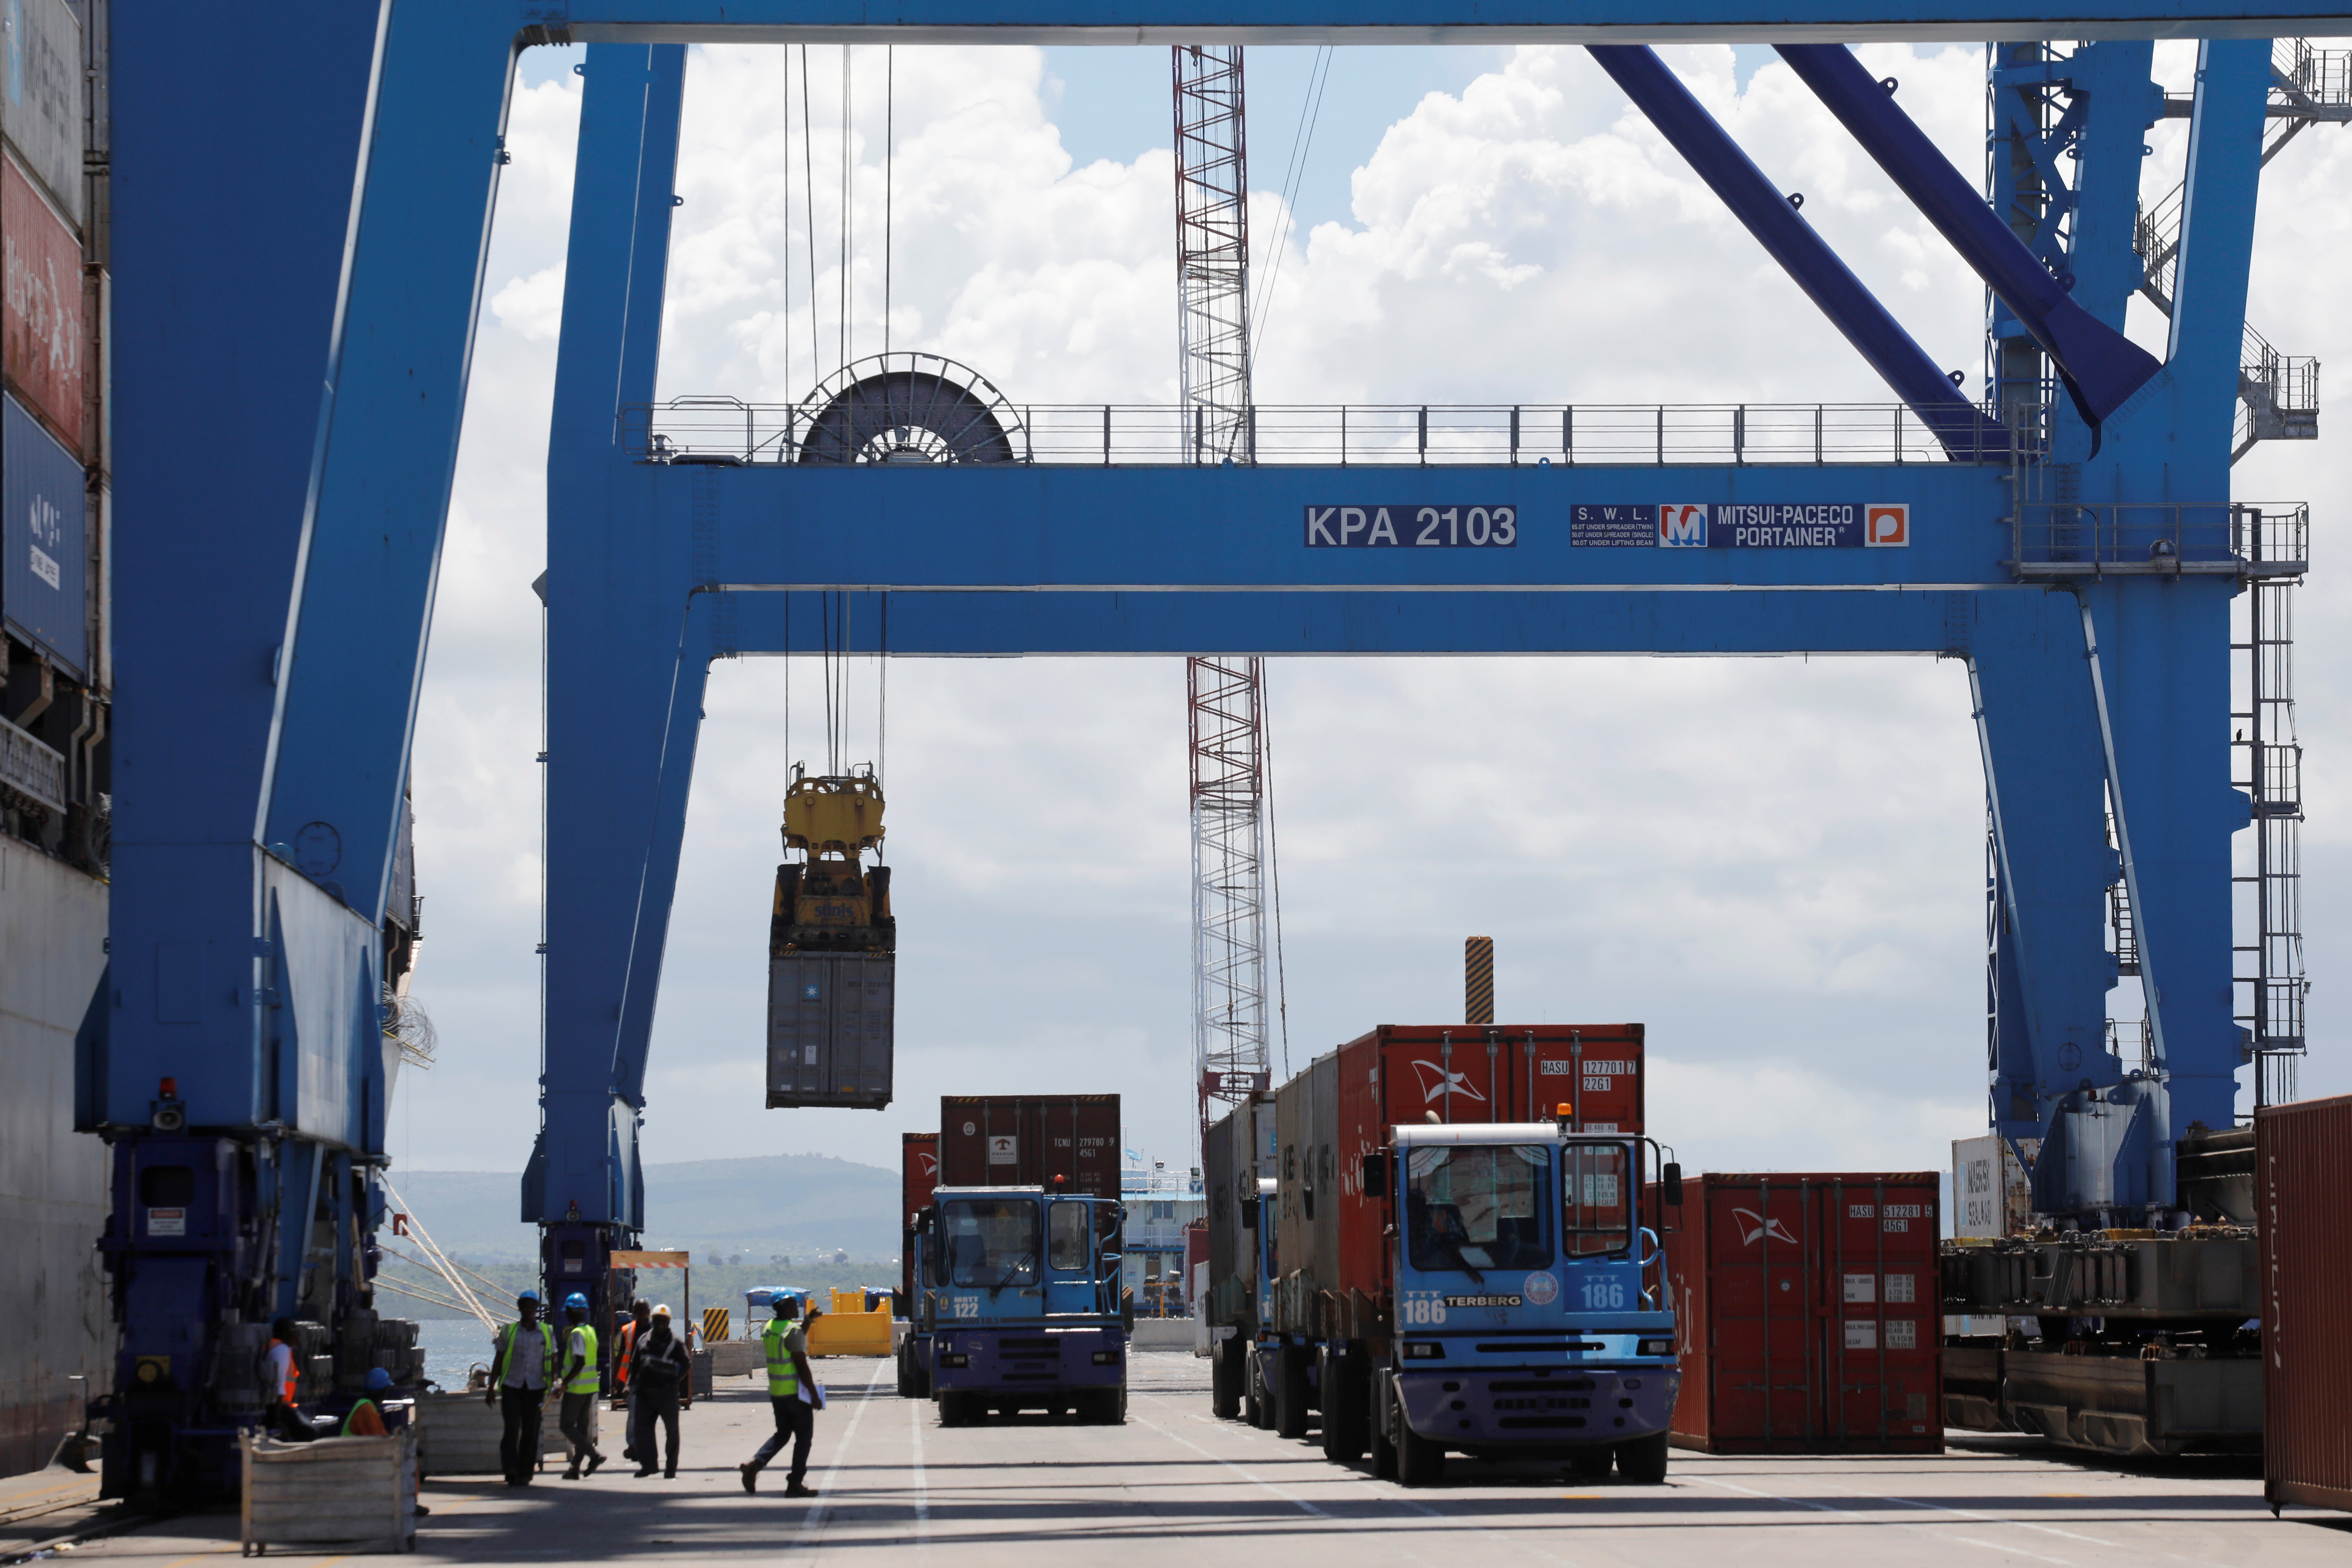 A crane loads shipping containers on a ship in the port of Mombasa, Kenya, October 23, 2019. Picture taken October 23, 2019. REUTERS/Baz Ratner